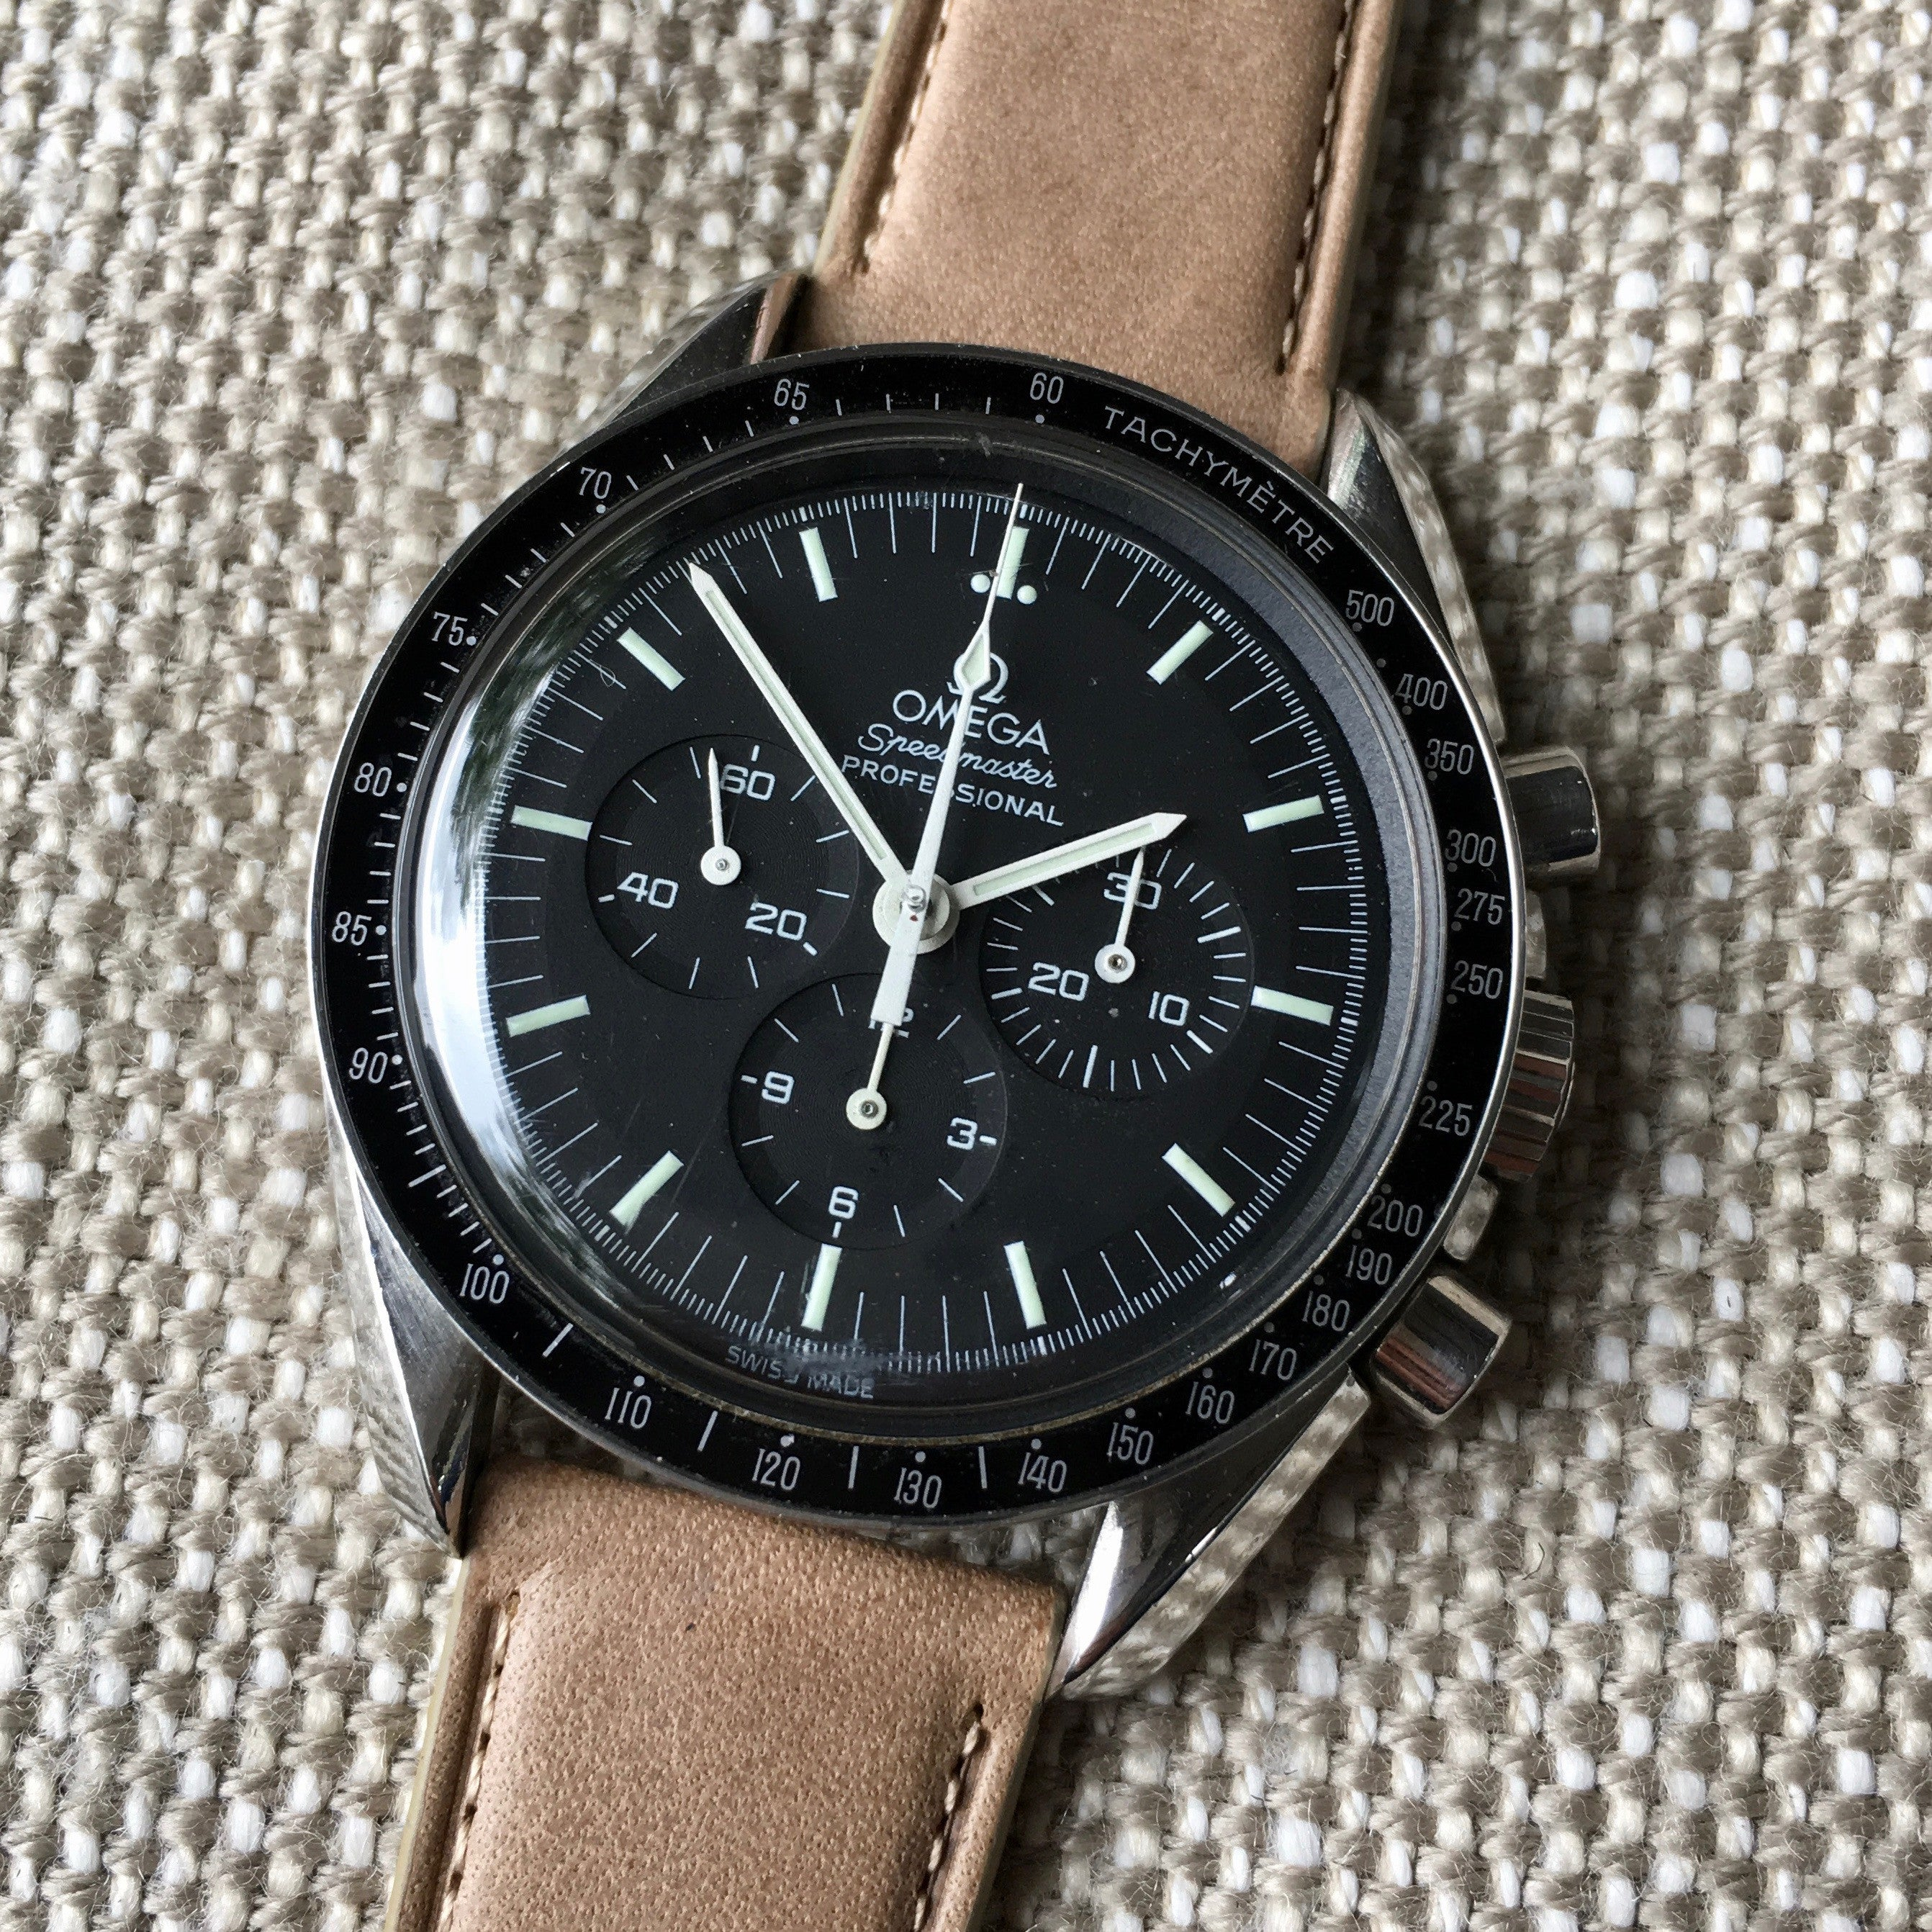 Vintage Omega Speedmaster 145.022 ST Moon Watch Transitional Cal. 861 Circa 1969 Watch - Hashtag Watch Company